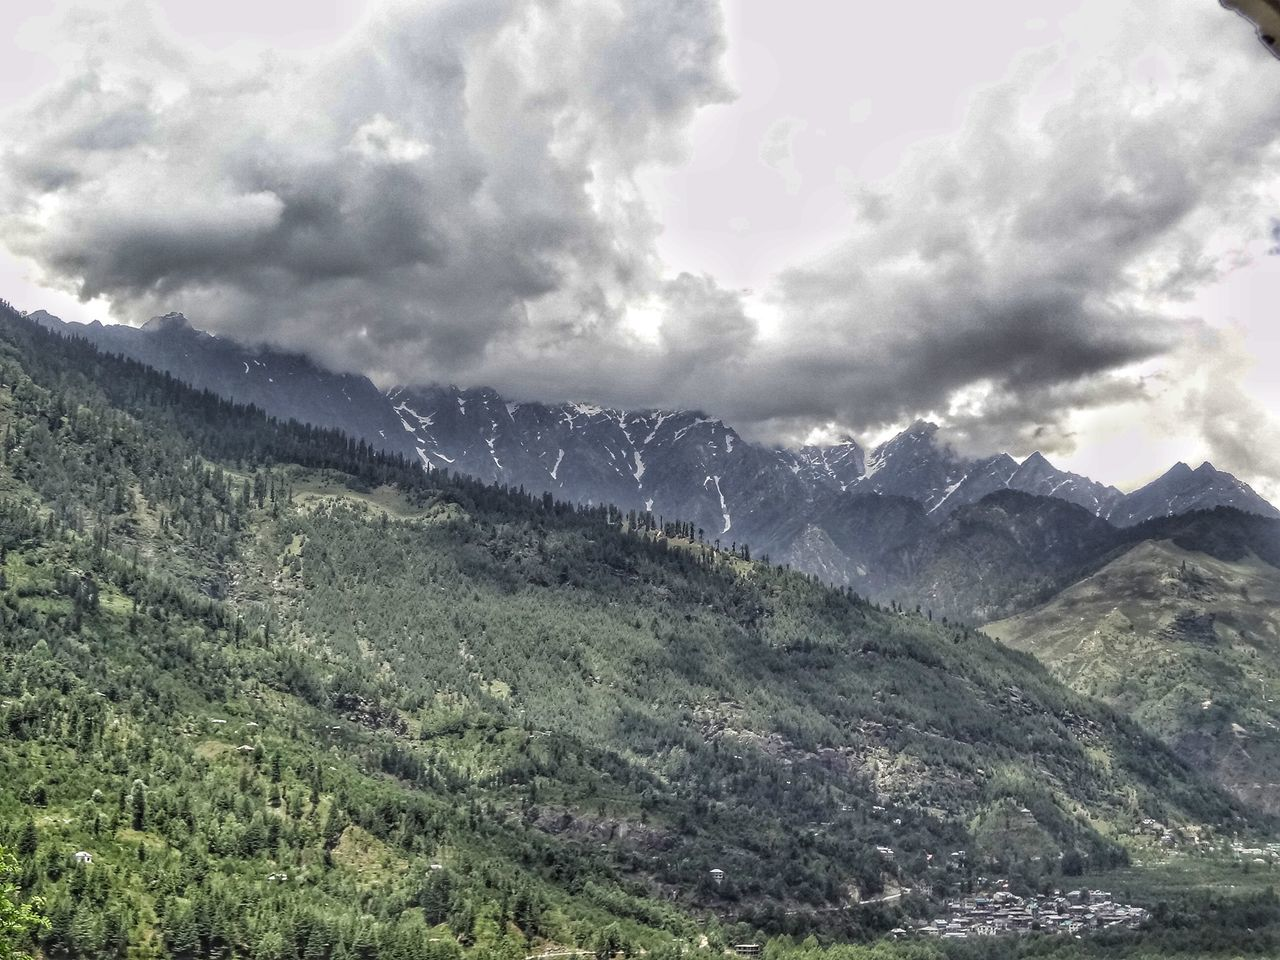 mountain, nature, landscape, no people, sky, beauty in nature, outdoors, day, holiday, scenics, range